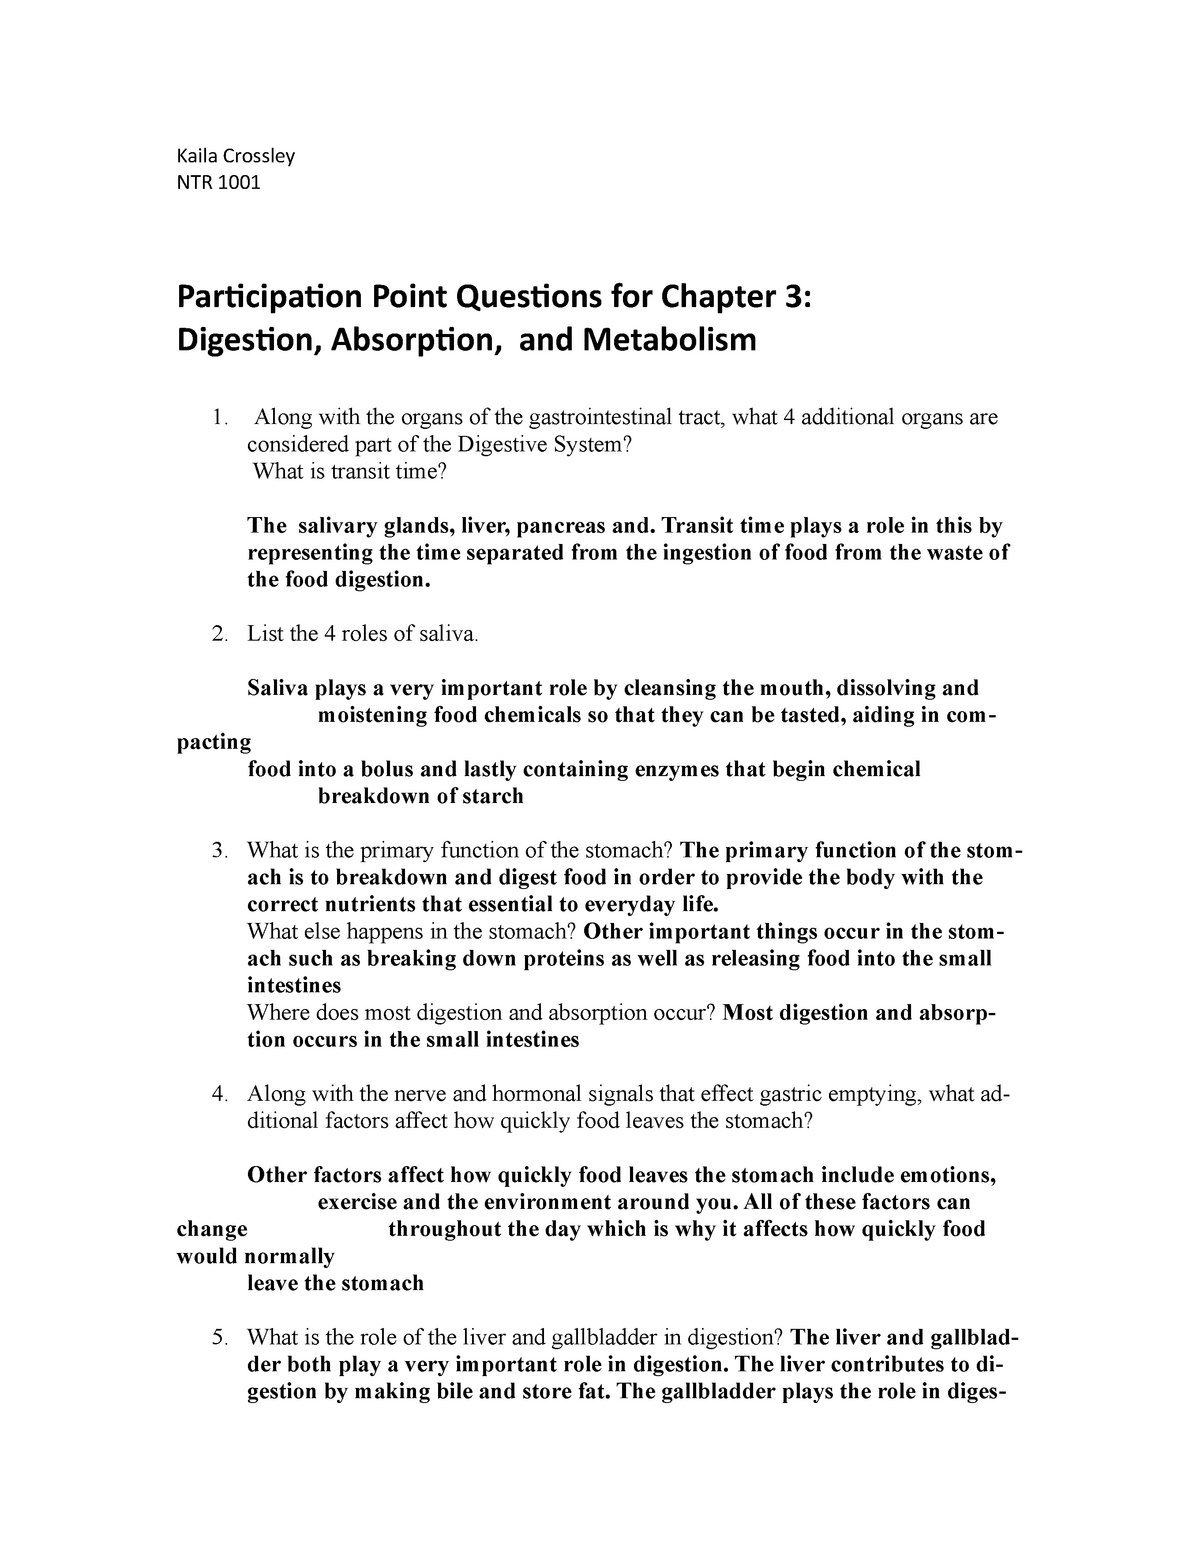 Participation Point Questions for Chapter 3, revised 2016